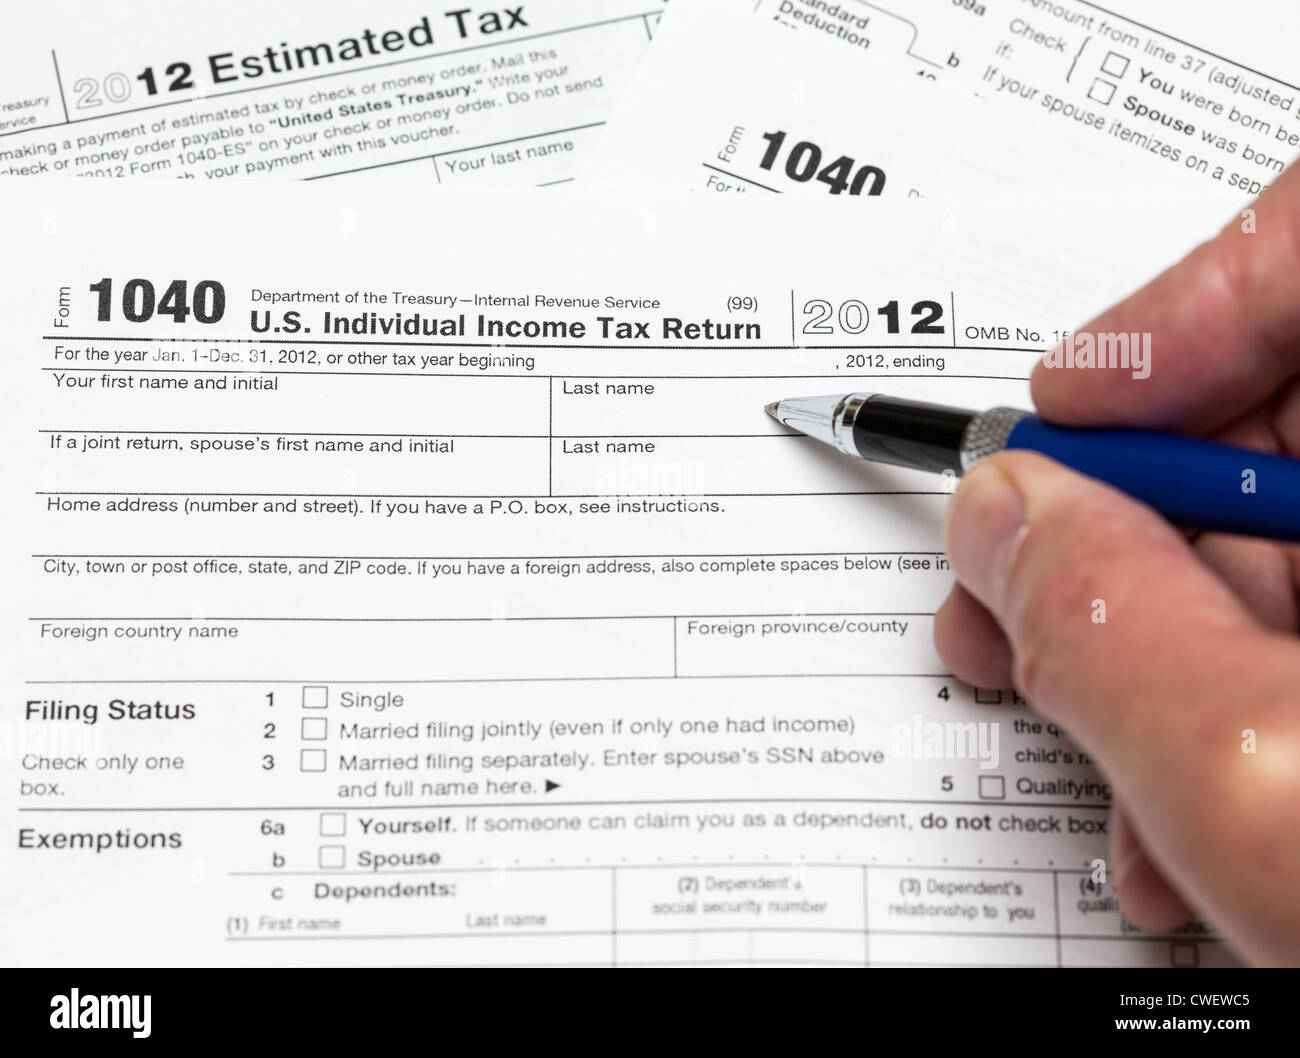 Tax Form 1040 For Tax Year 2012 For Us Individual Tax Return With